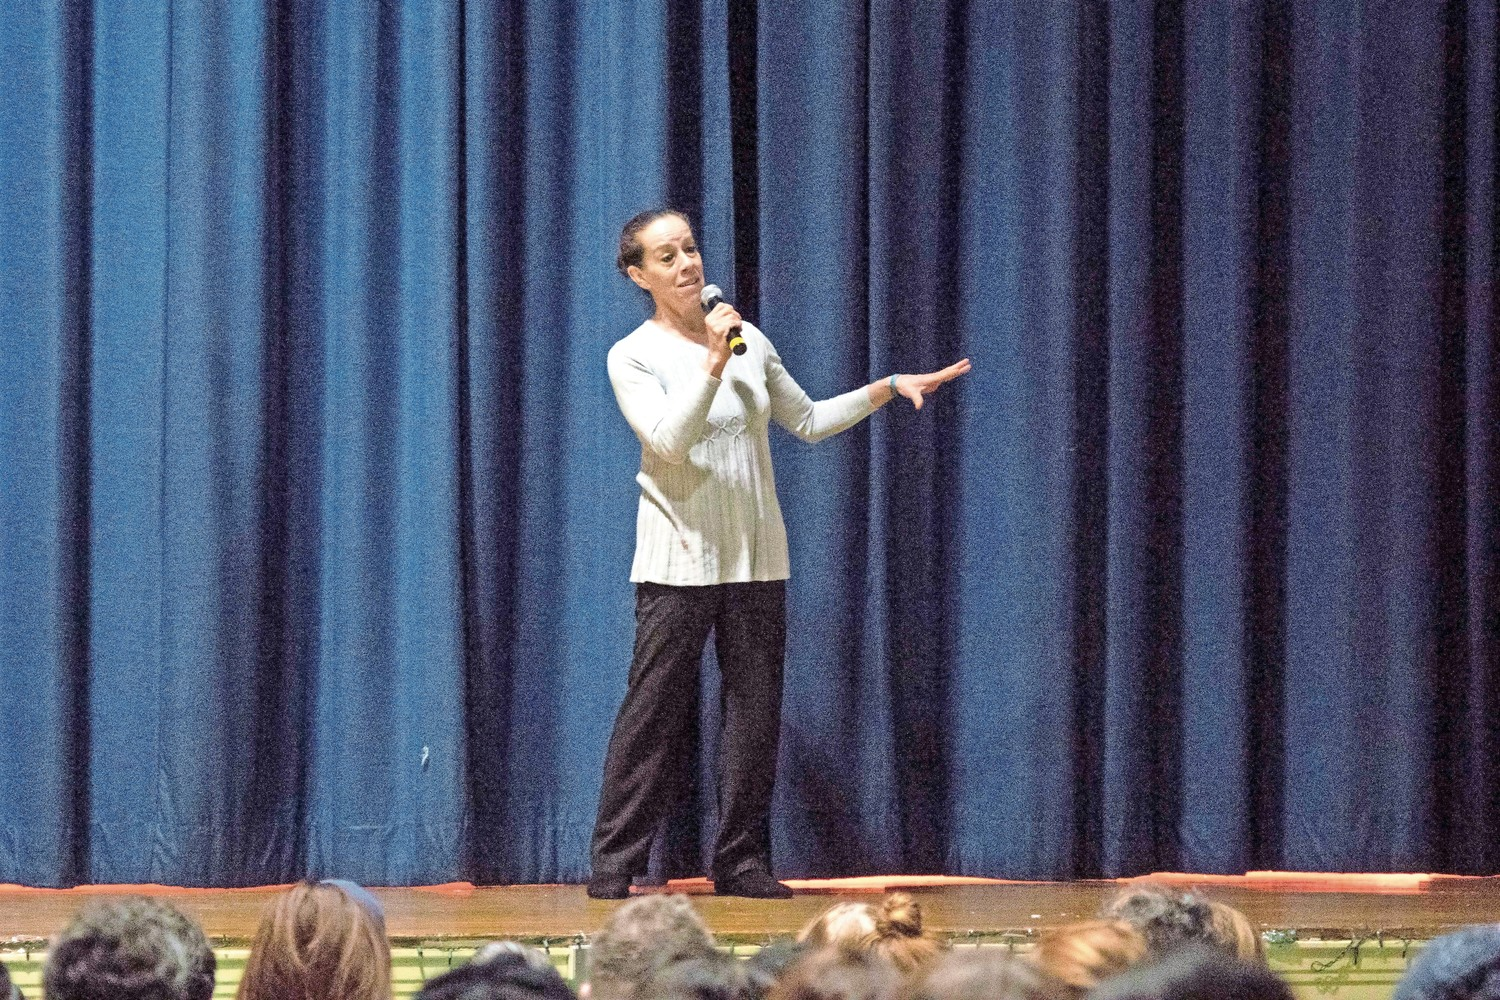 Kim Johnson introduces a new act in a play about early American history at P.S. 81.